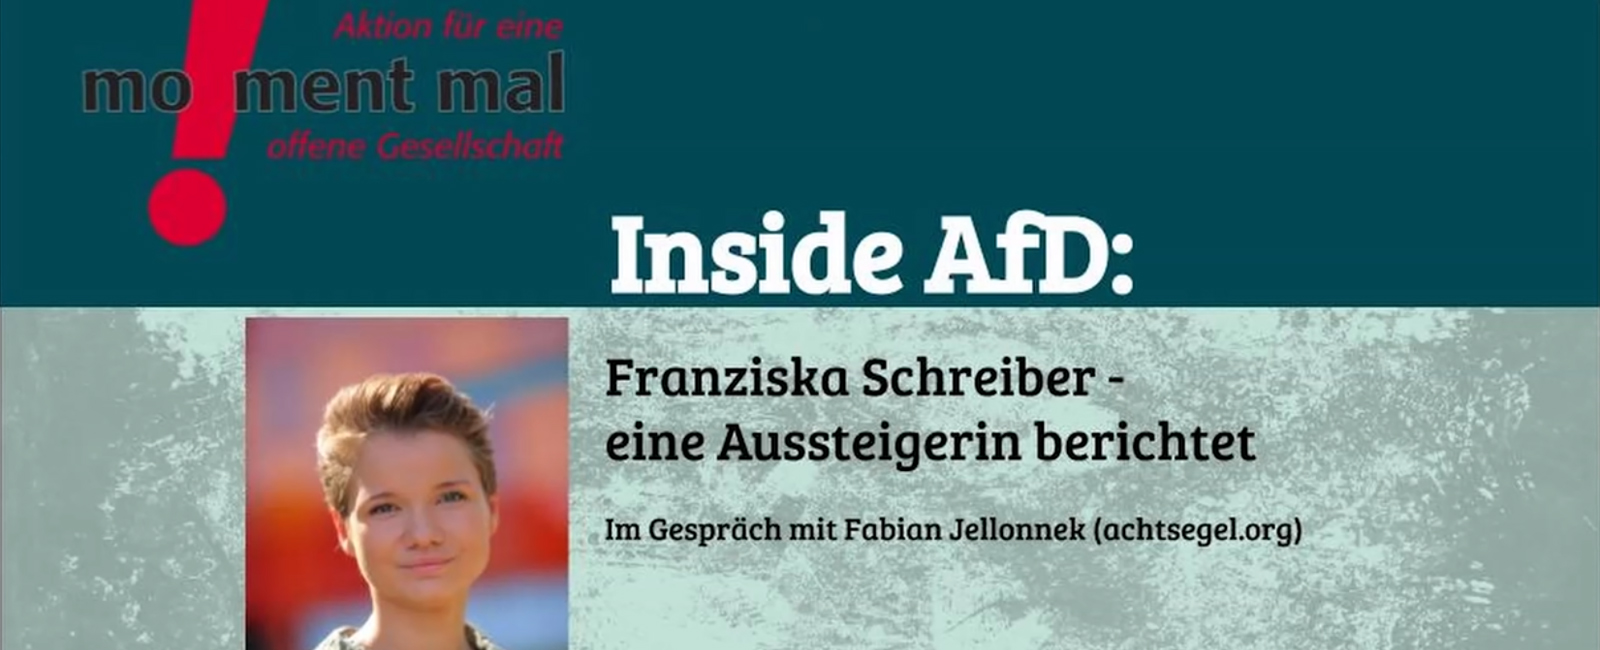 Bild_Header_Blog